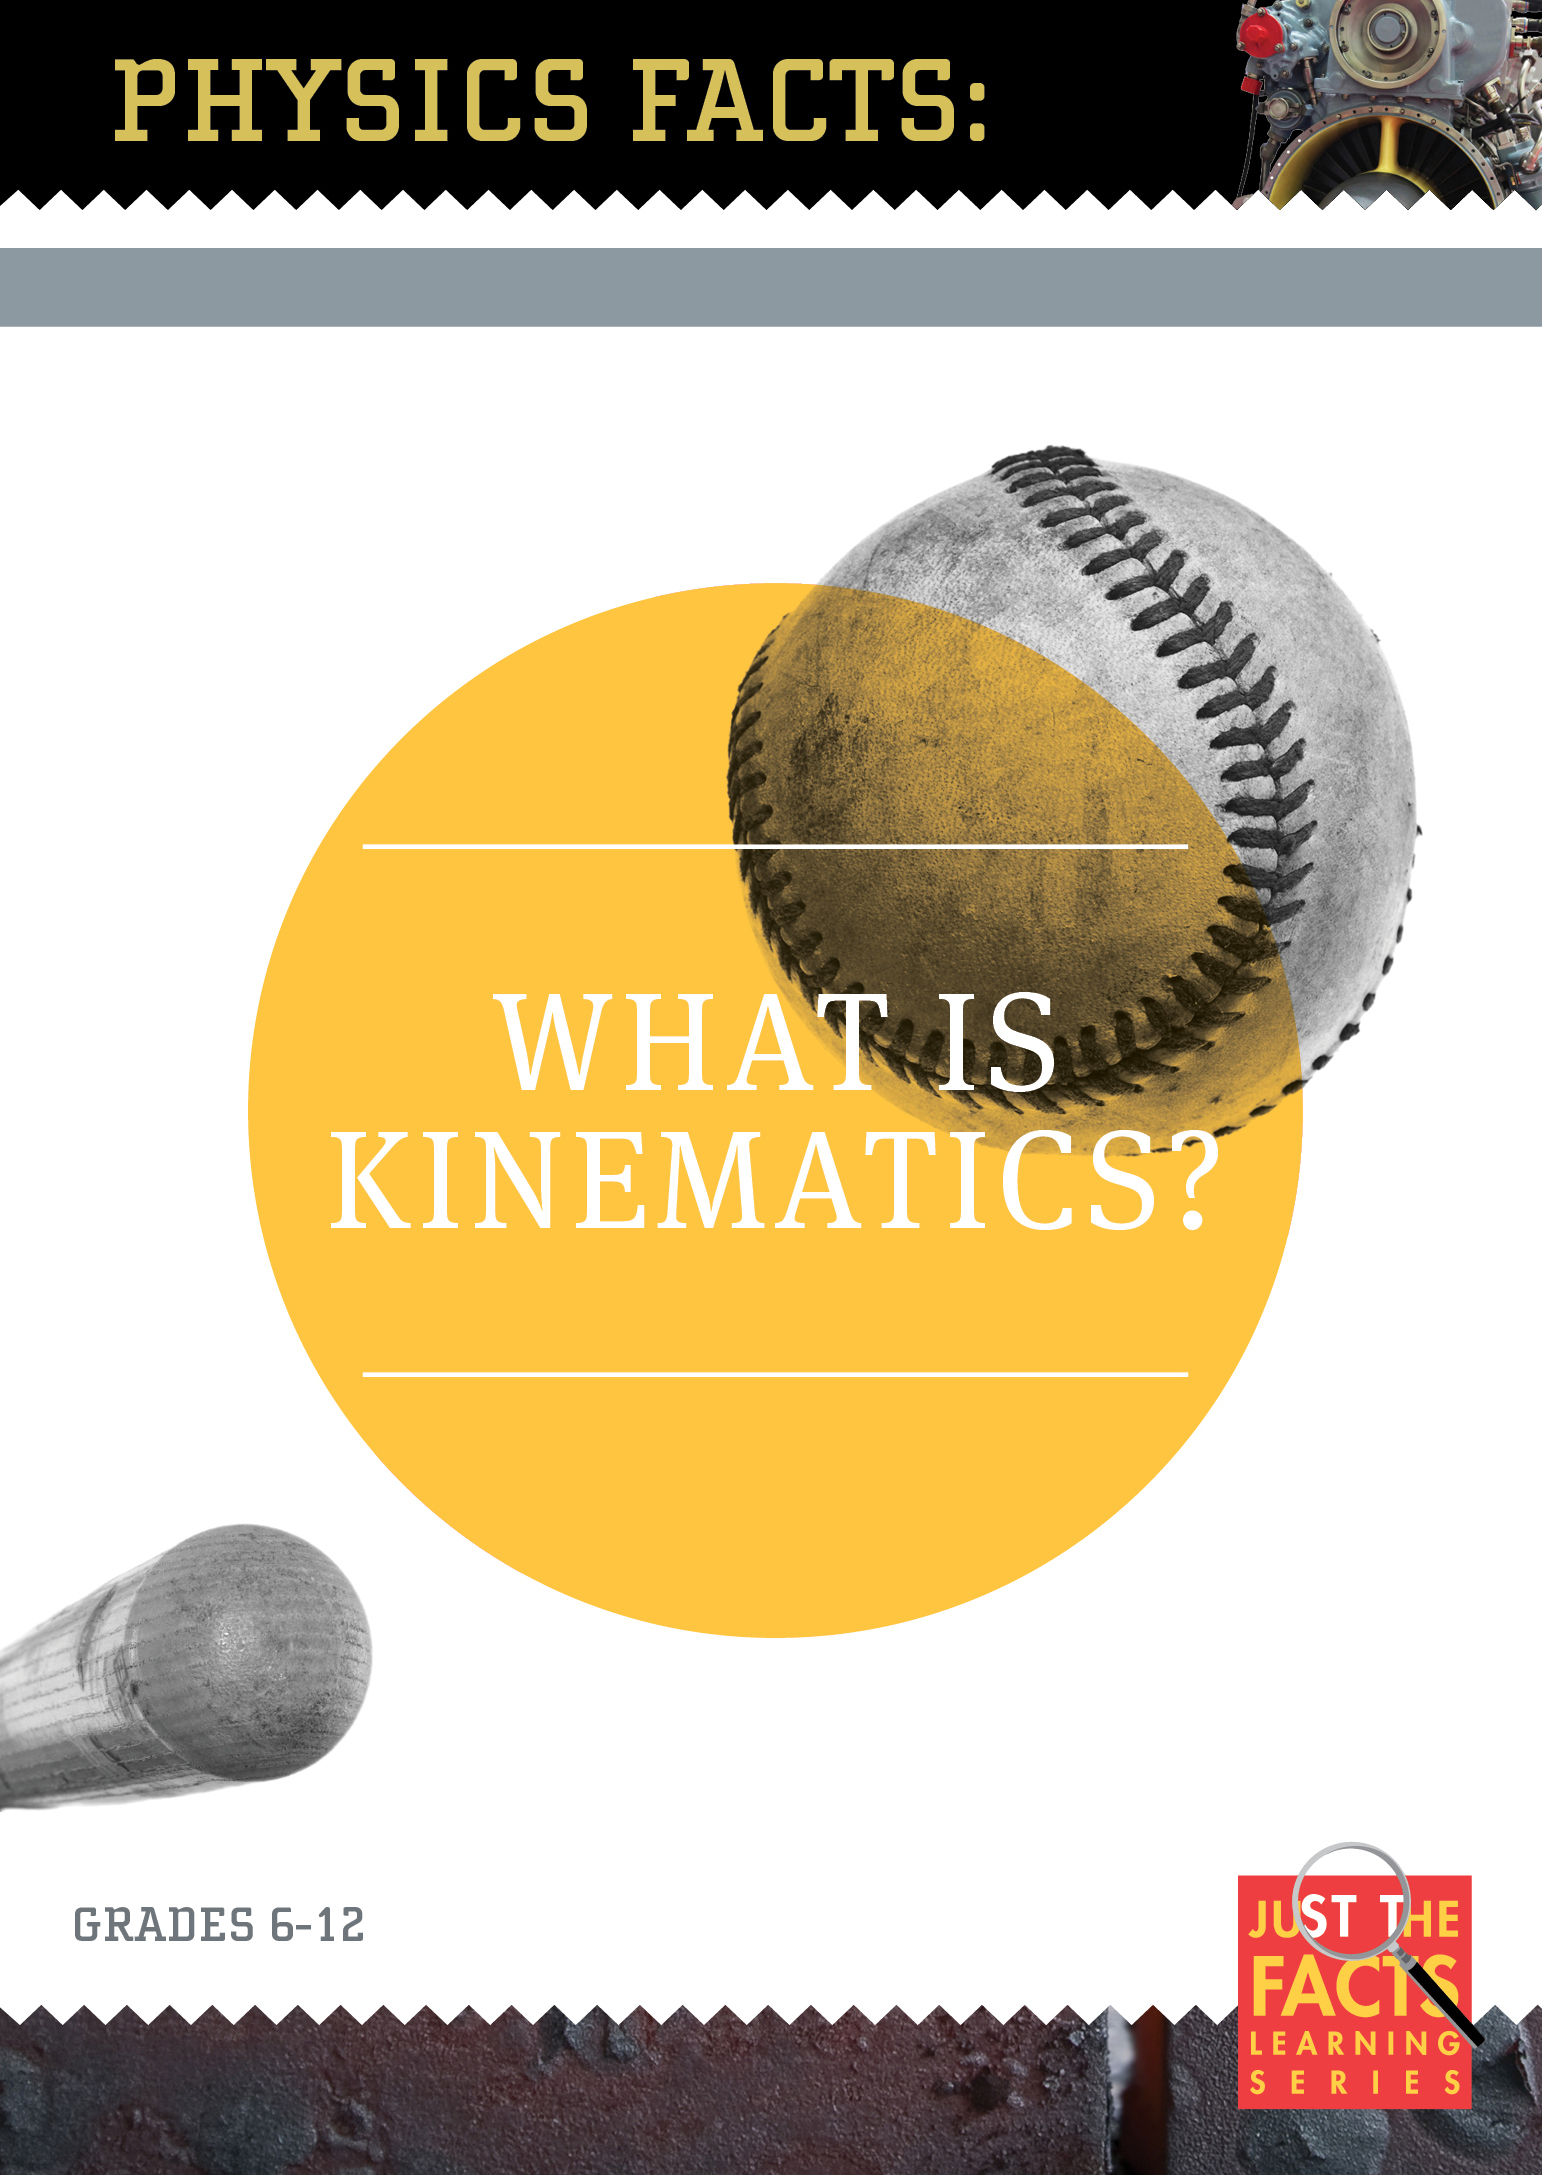 Physics Facts: What Is Kinematics?